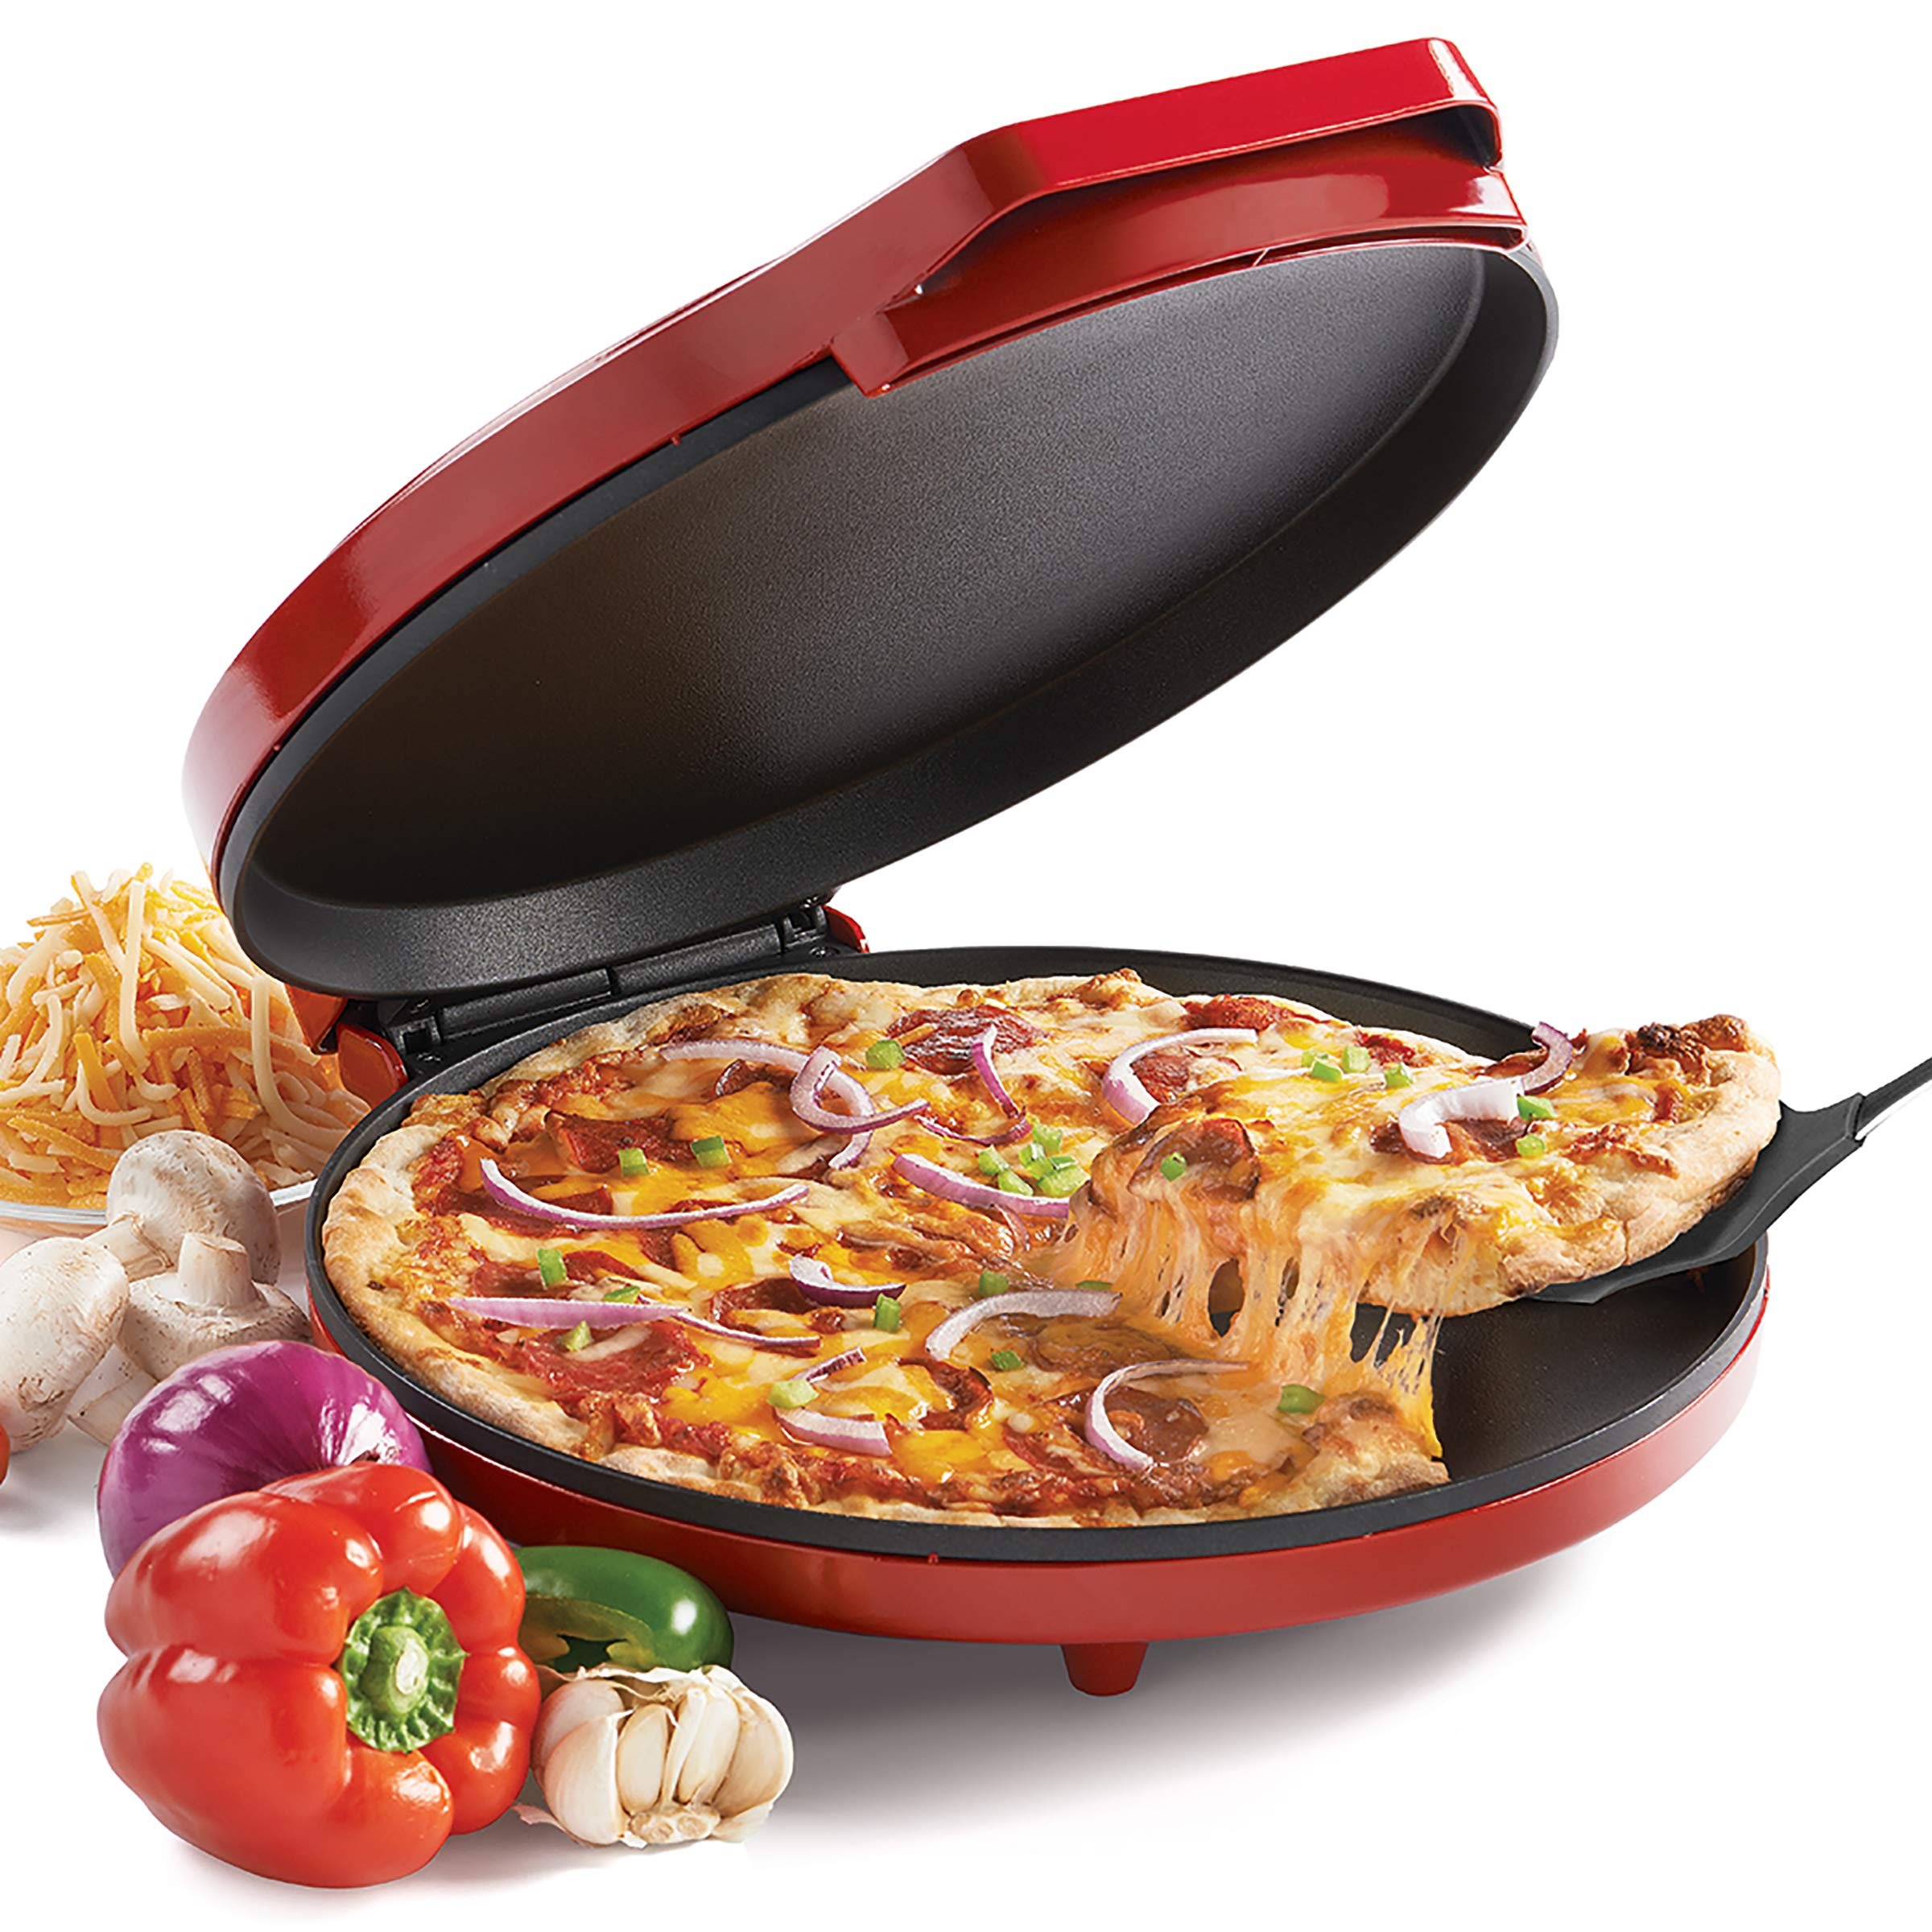 Commercial Chef CHQP12R 12-Inch Pizza Maker, Red